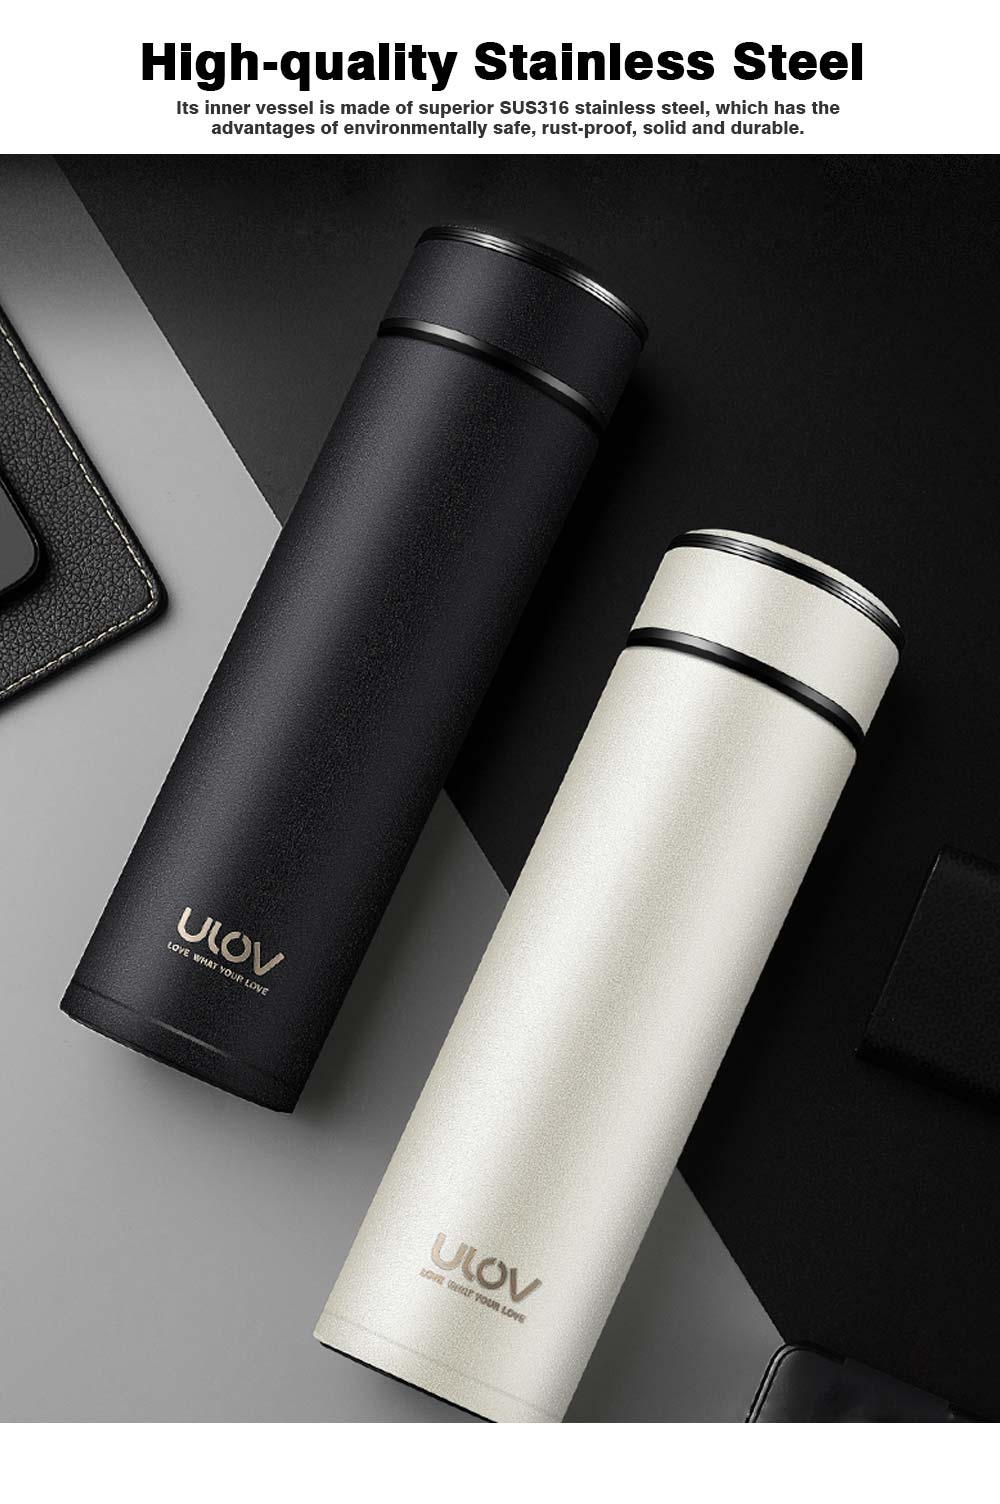 Portable 500ML Stainless Steel Thermos Mug, Minimalist Large Capacity Black White Sanded Smooth Vacuum Flask Tumbler 1